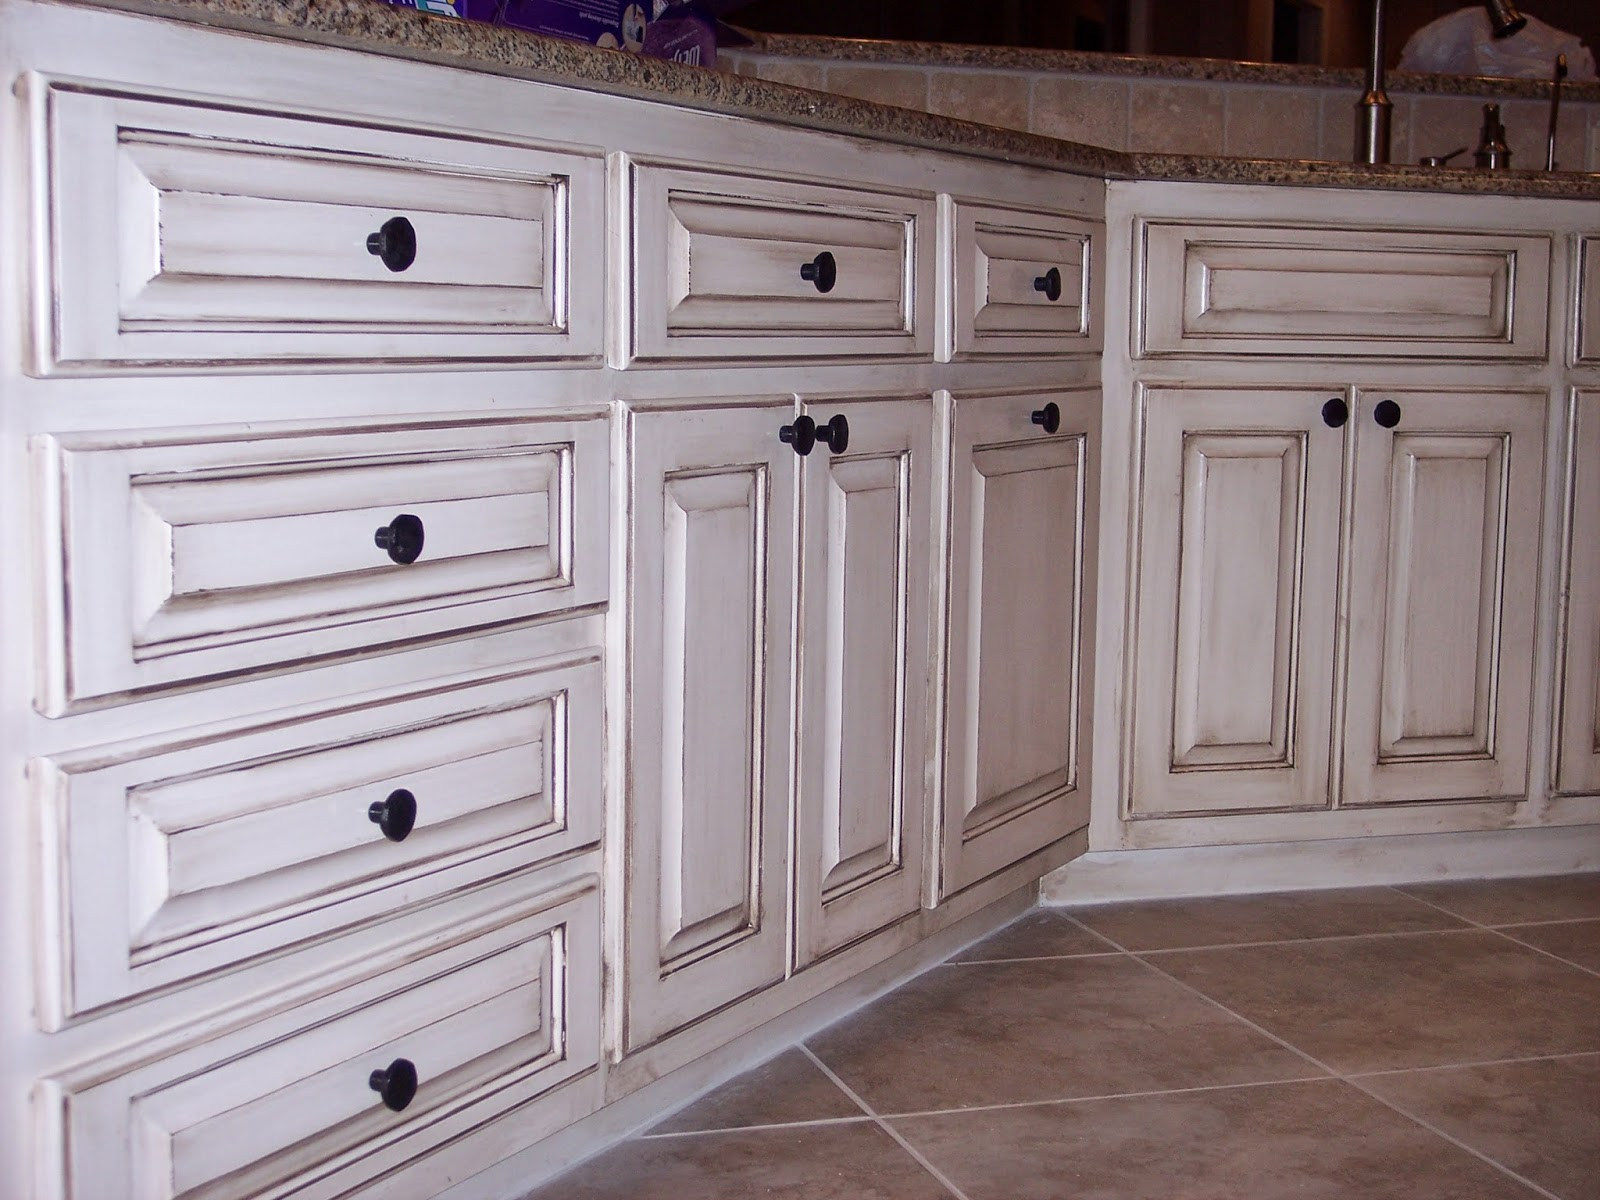 The ragged wren how to paint cabinets secrets from a professional - How to glaze kitchen cabinets that are painted ...